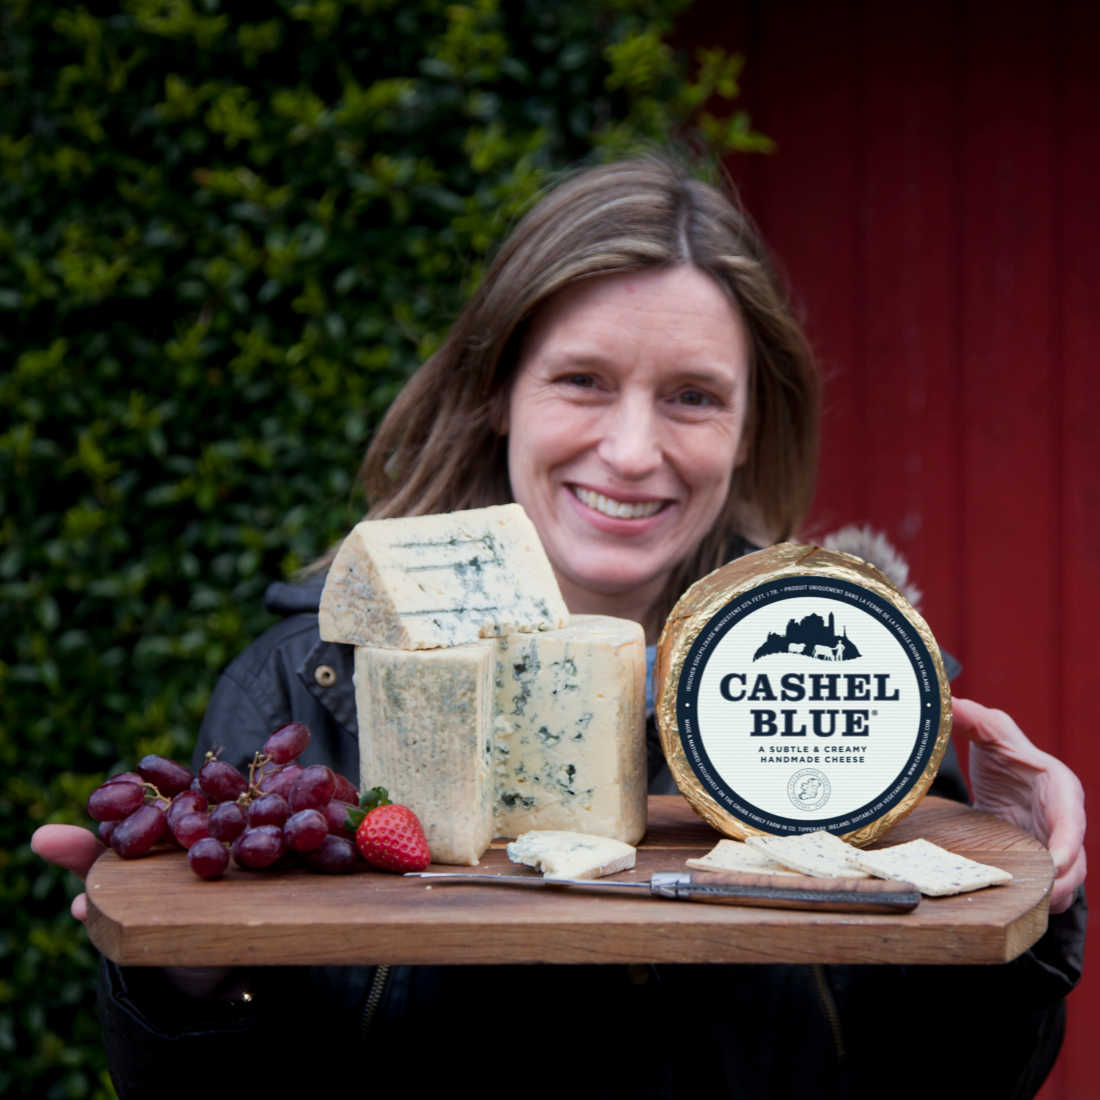 400-Cashel-Blue-Cheese-Maker-Low-Res-Web